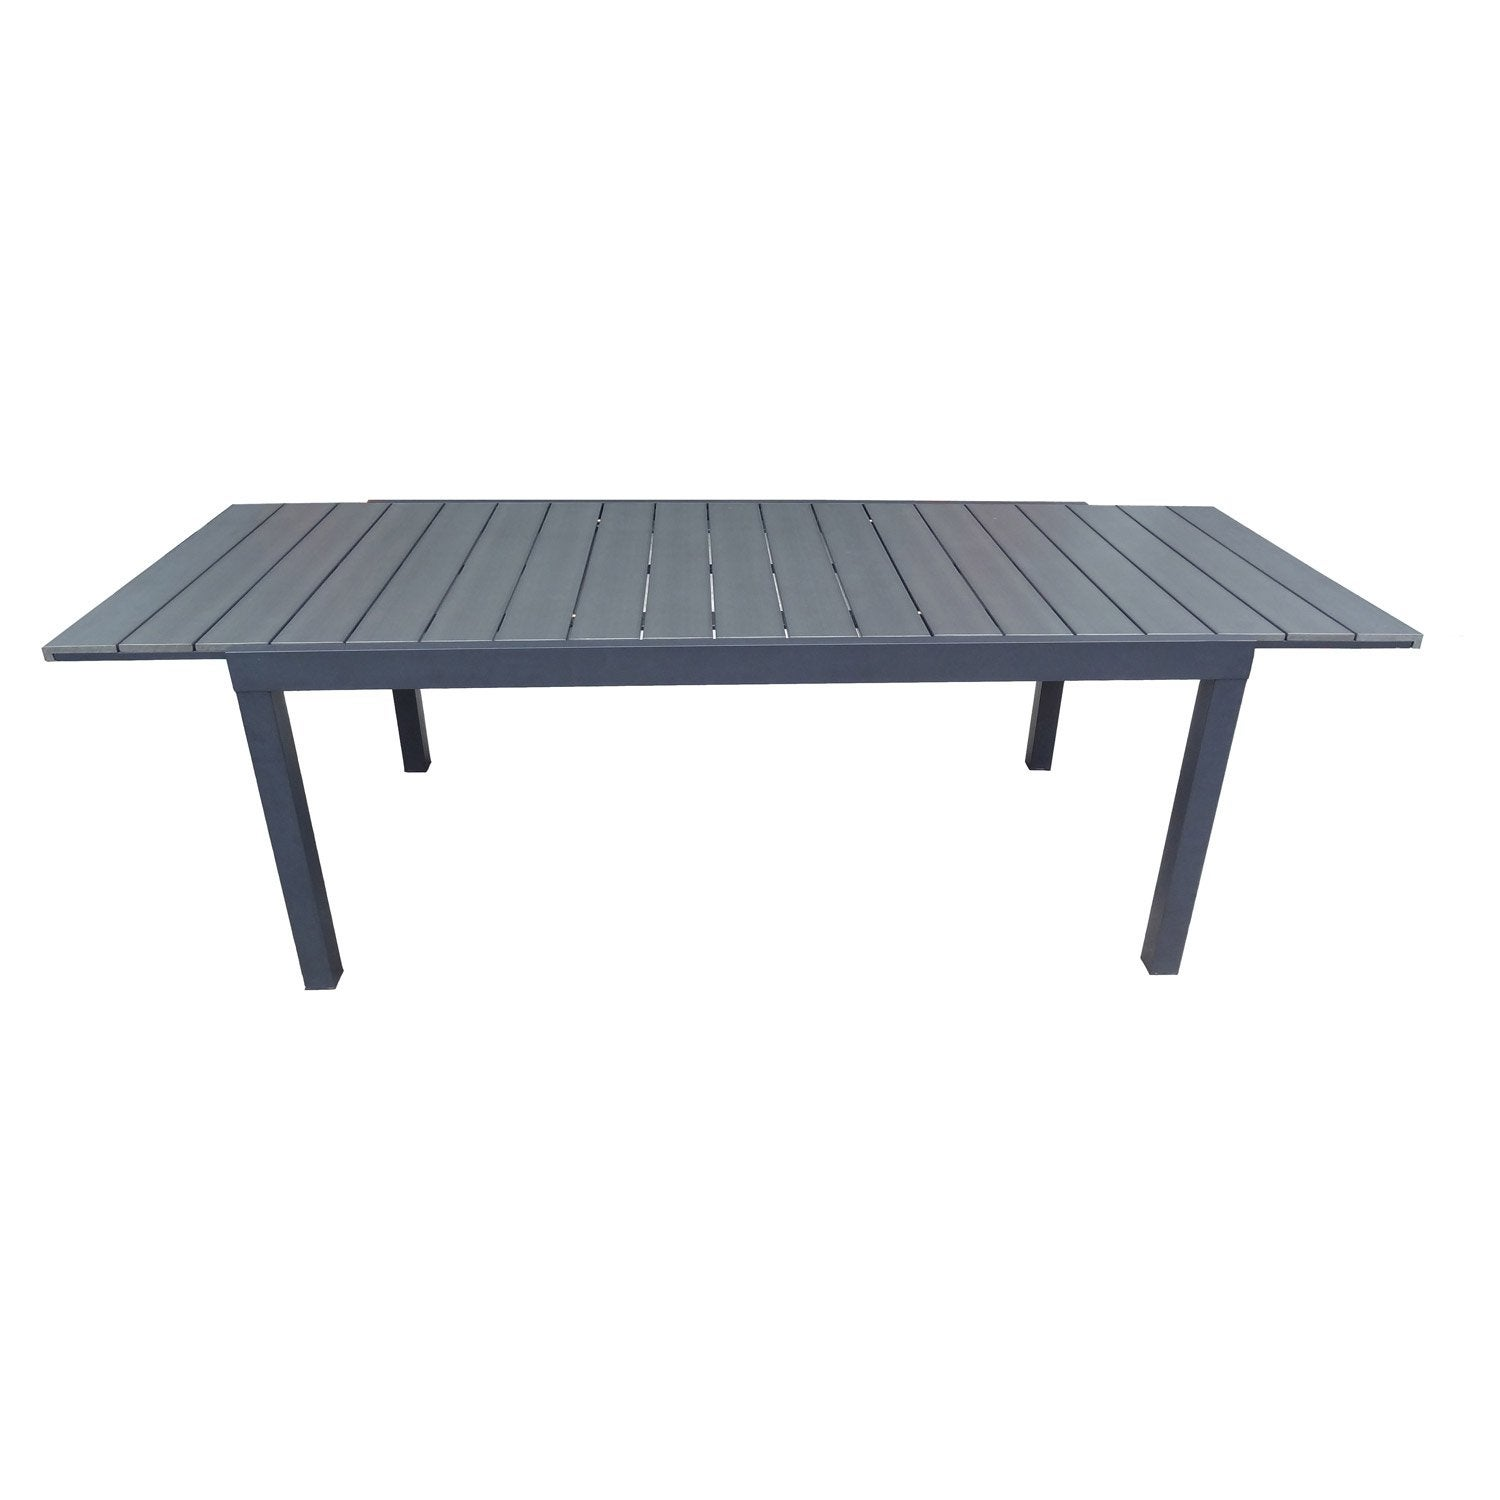 Table de jardin naterial pratt rectangulaire gris leroy for Table de jardin pliante plastique